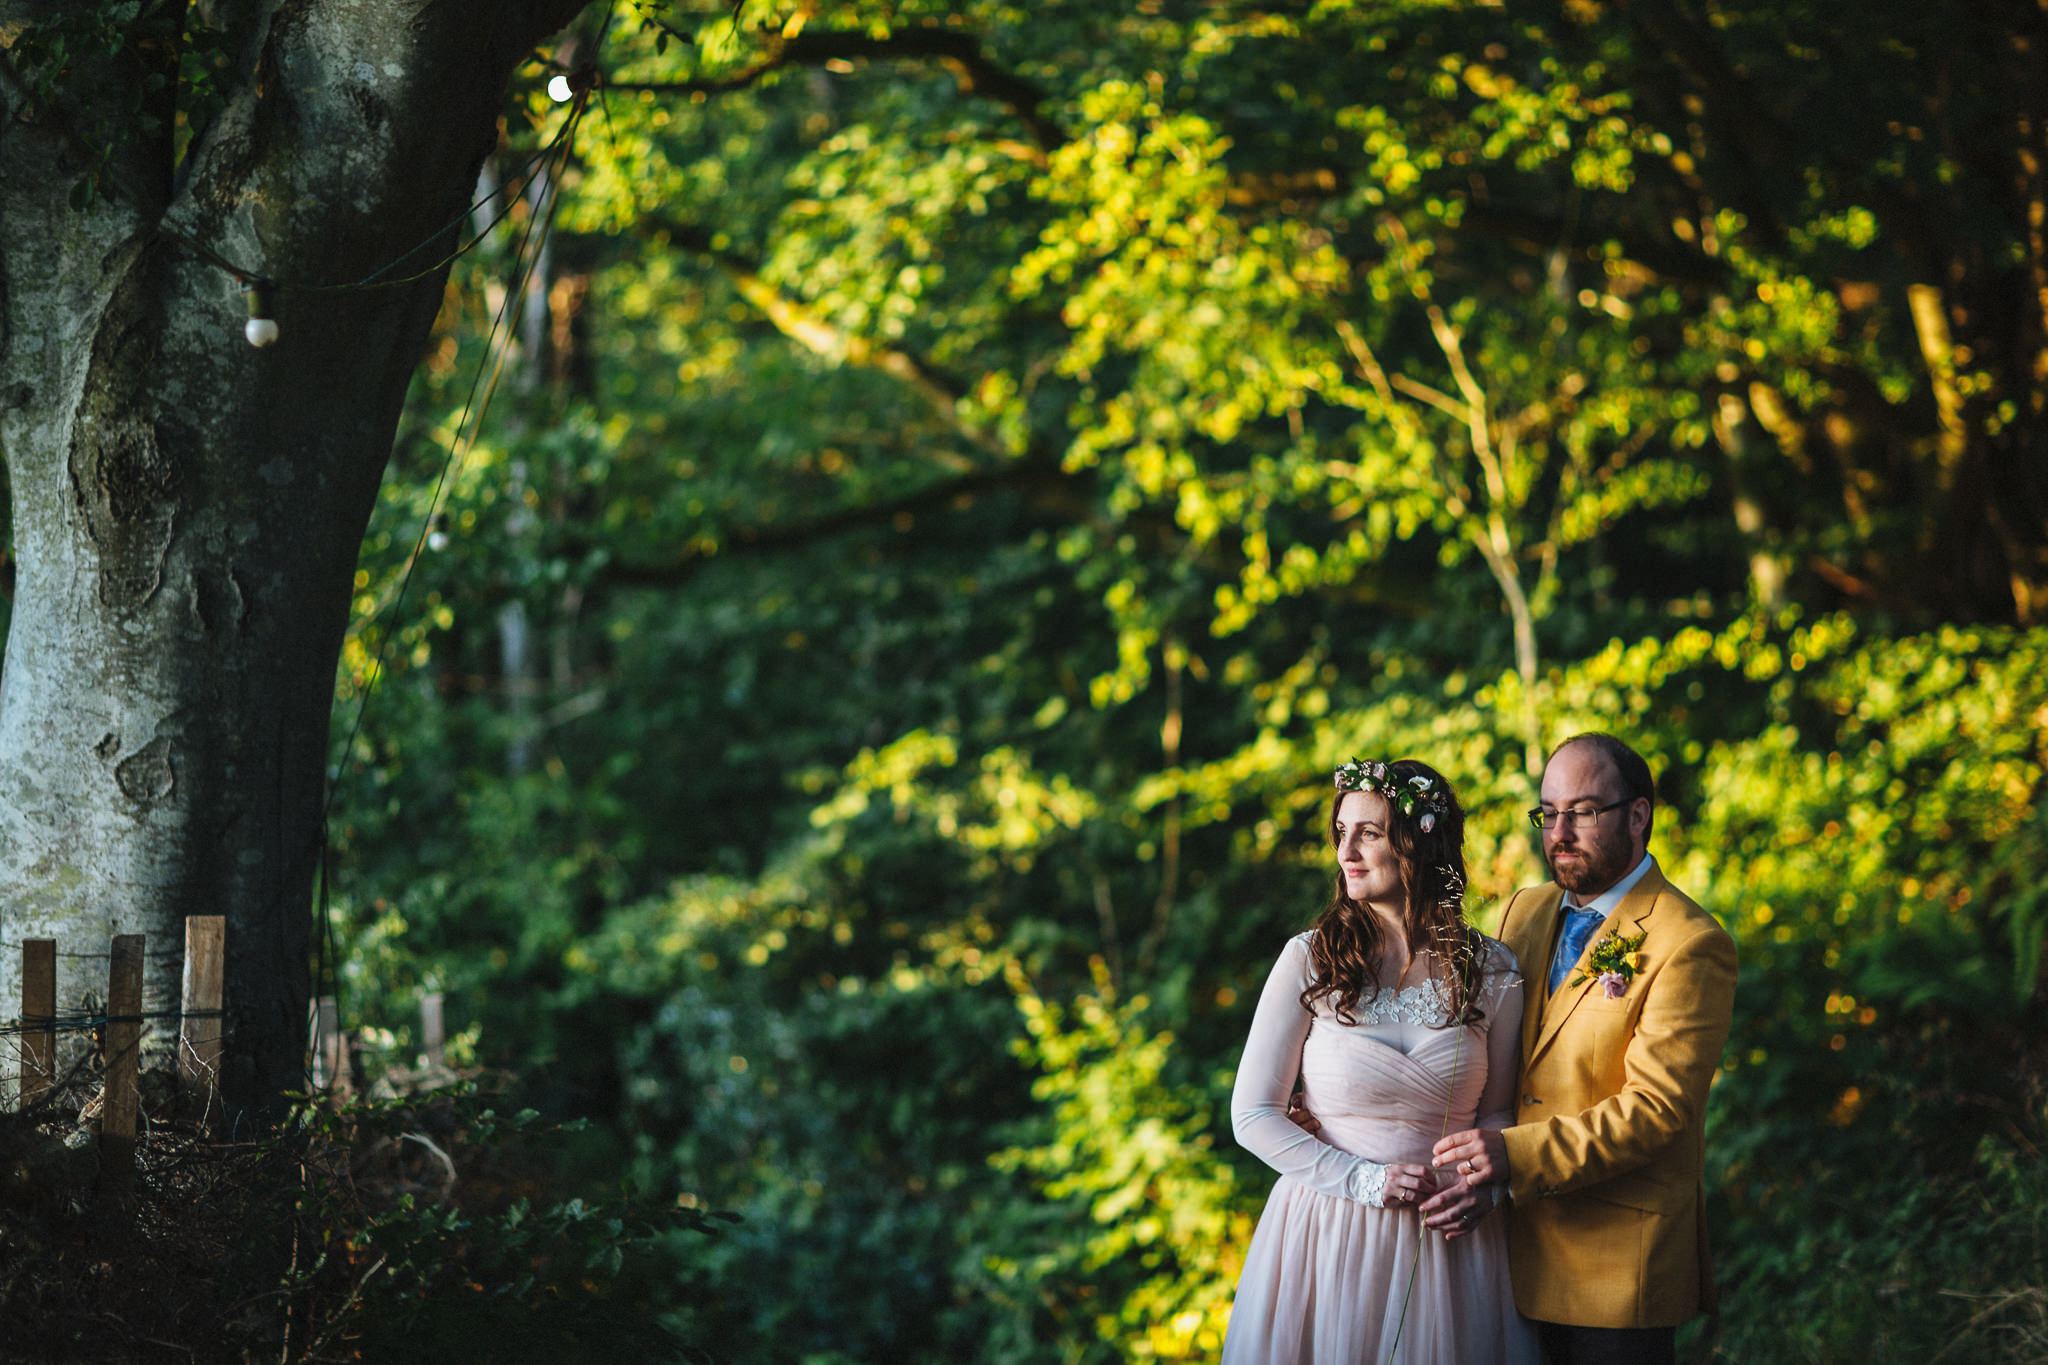 paul-marbrook-Fforest-Wedding-Photographer-90082